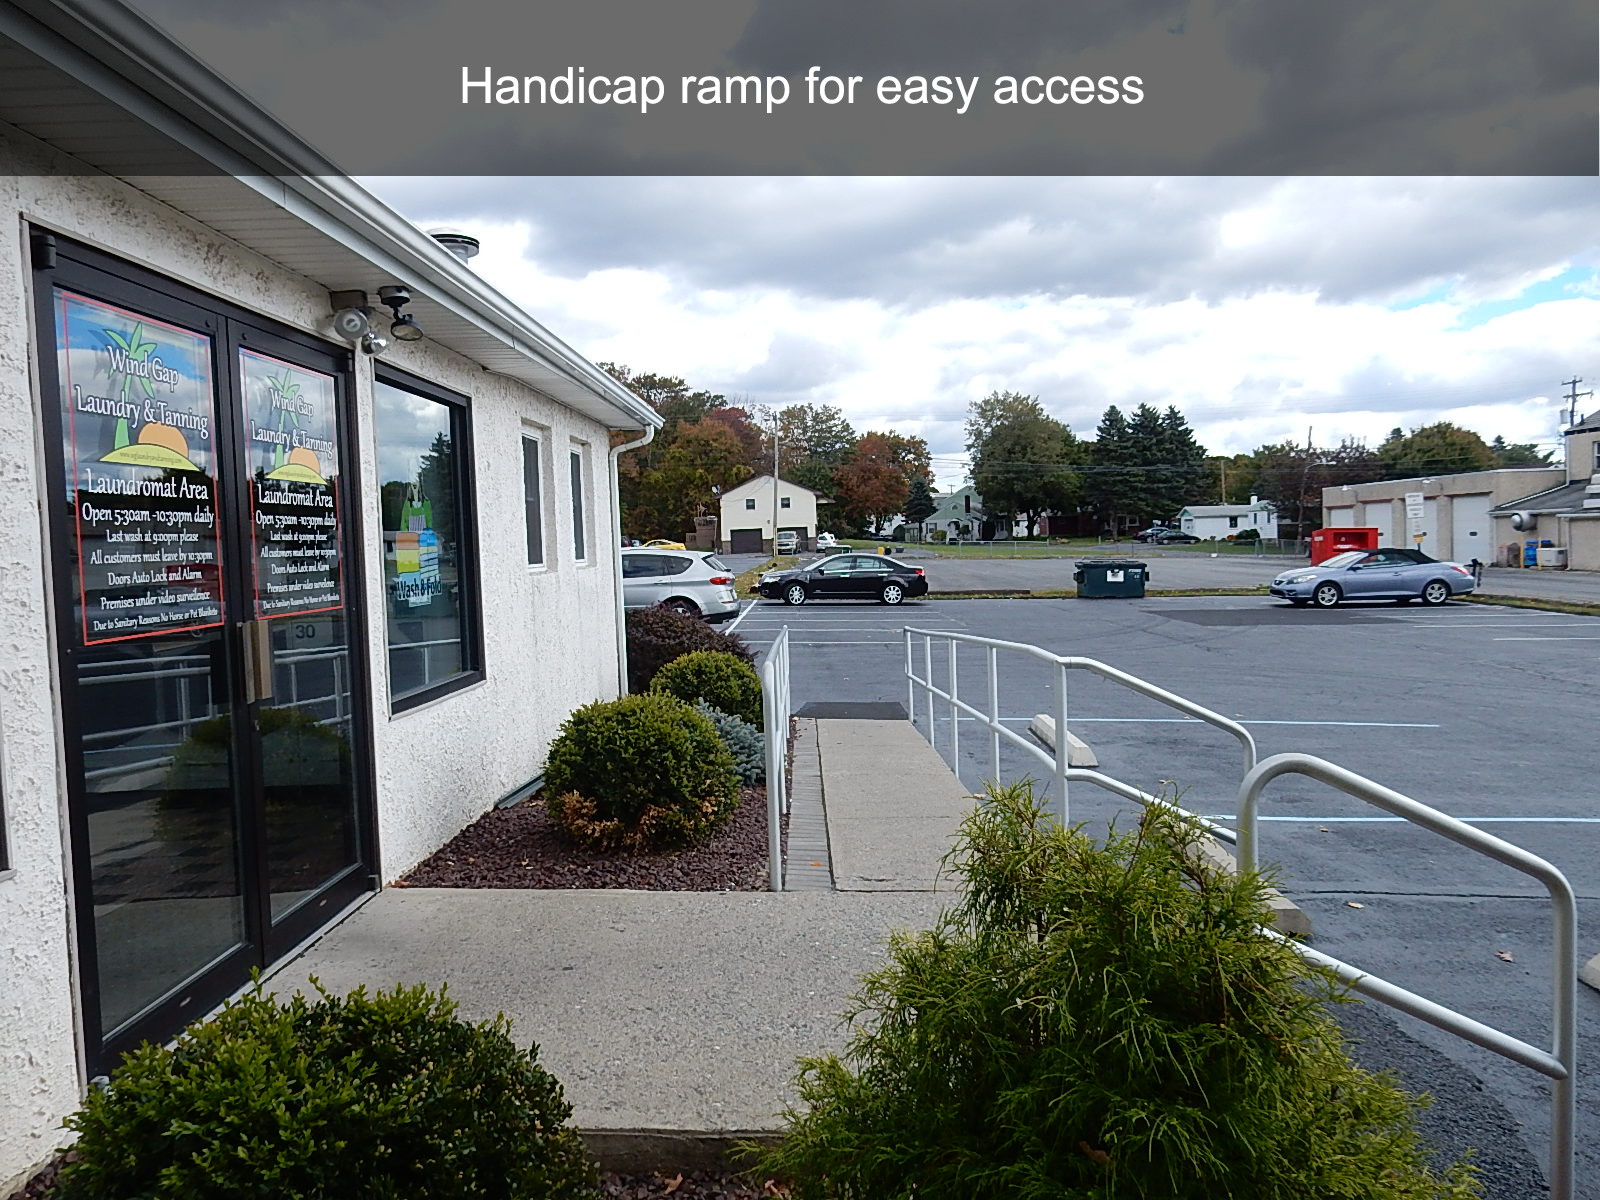 Handicap ramp for easy access